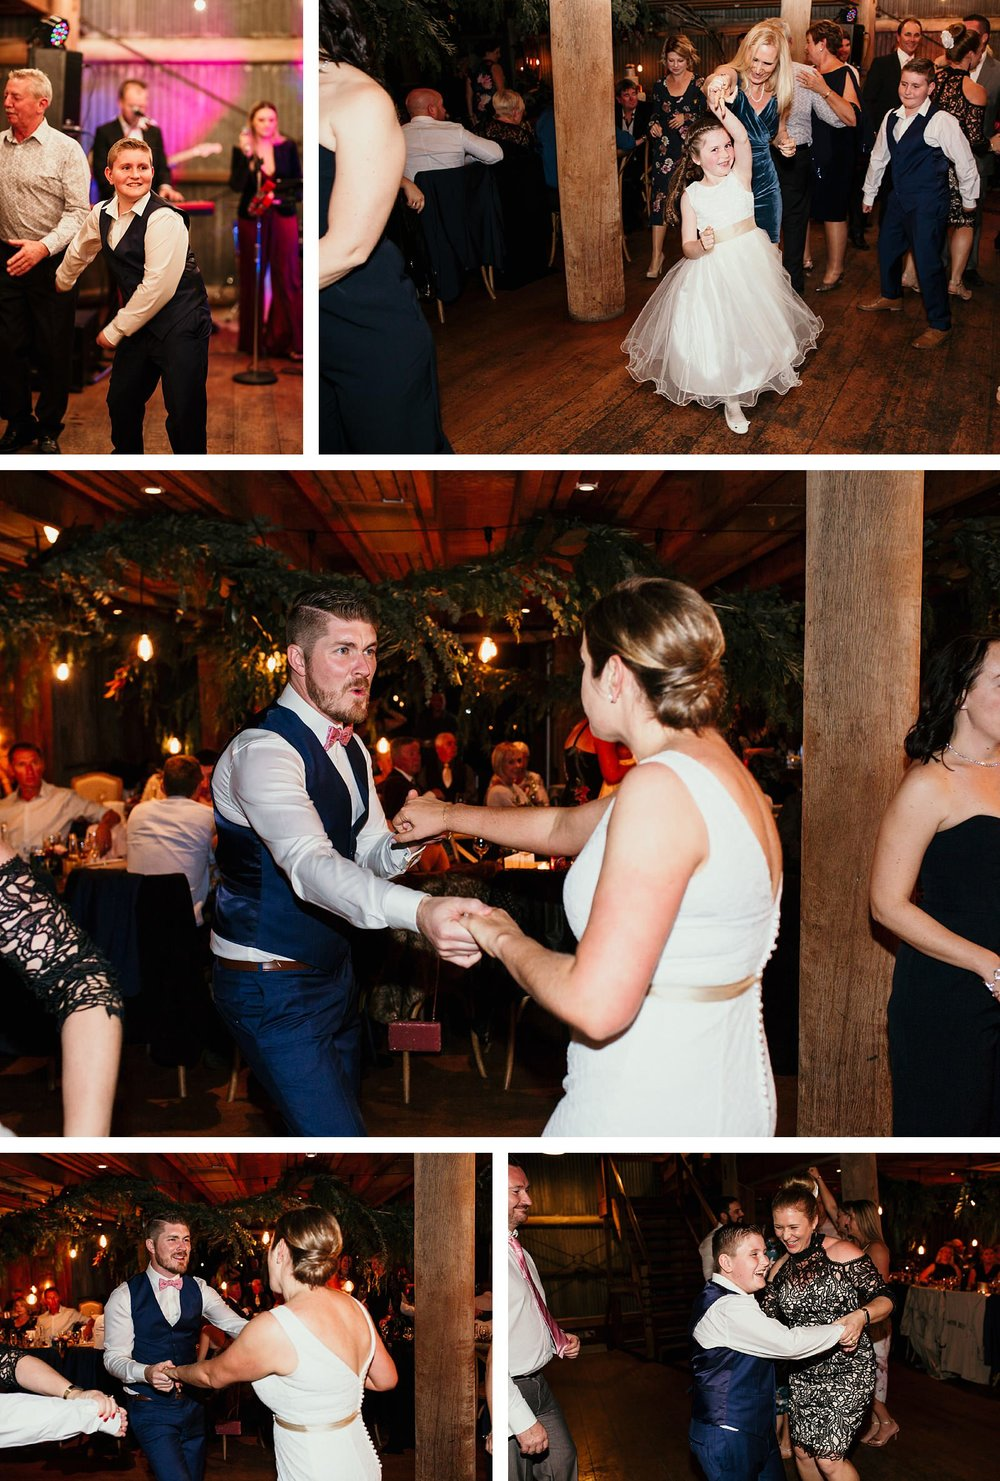 152Hunter Valley Wedding Photographers Bryce Noone Photography at Tocal Homestead Wedding Venue.jpg